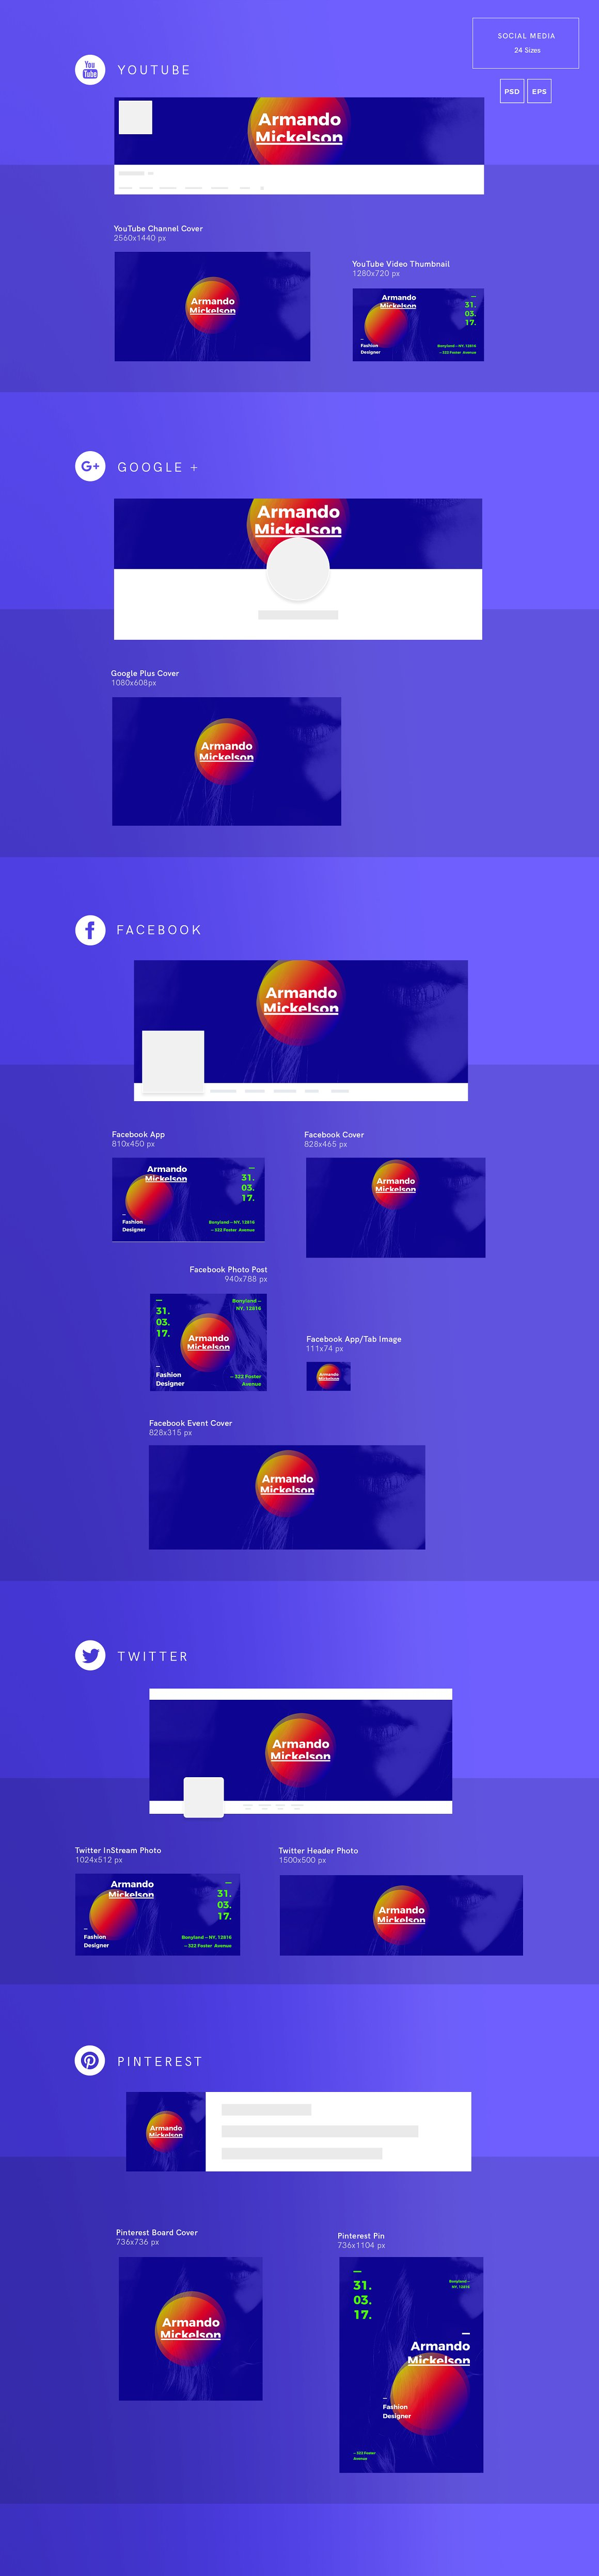 Social Media Pack | Fashion Designer